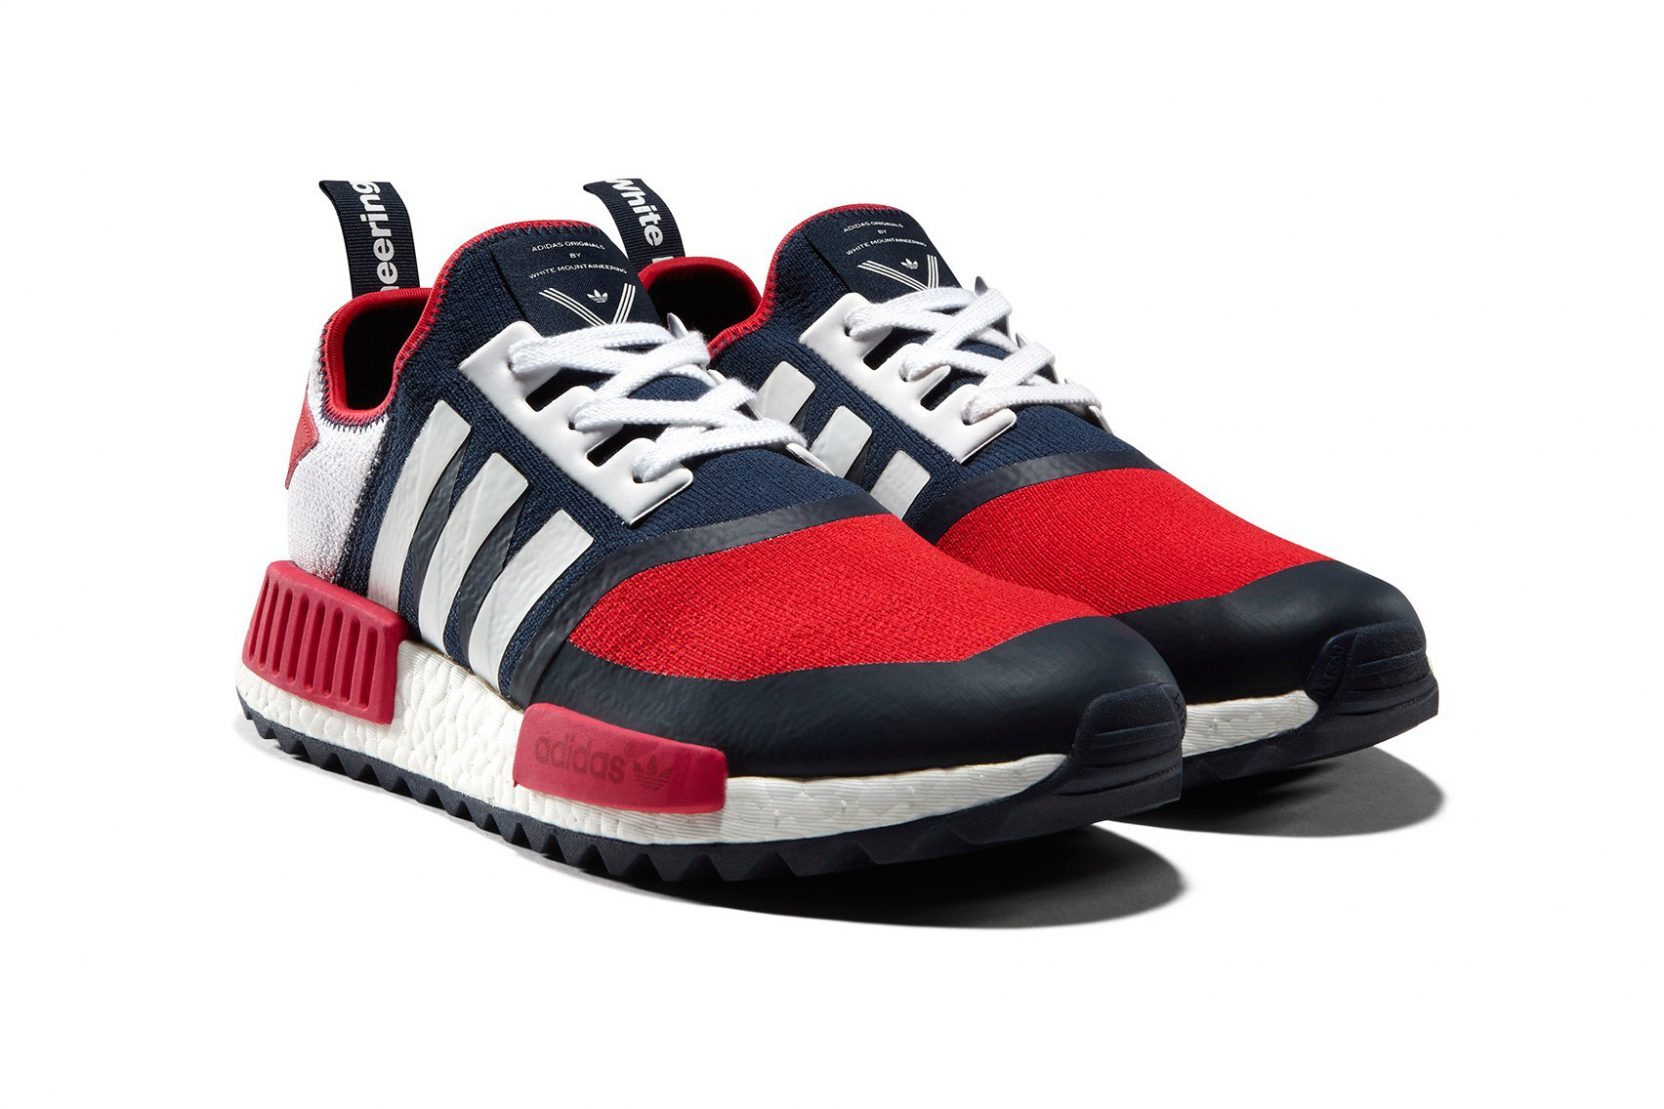 White Mountaineering x Adidas Spring Collection 1